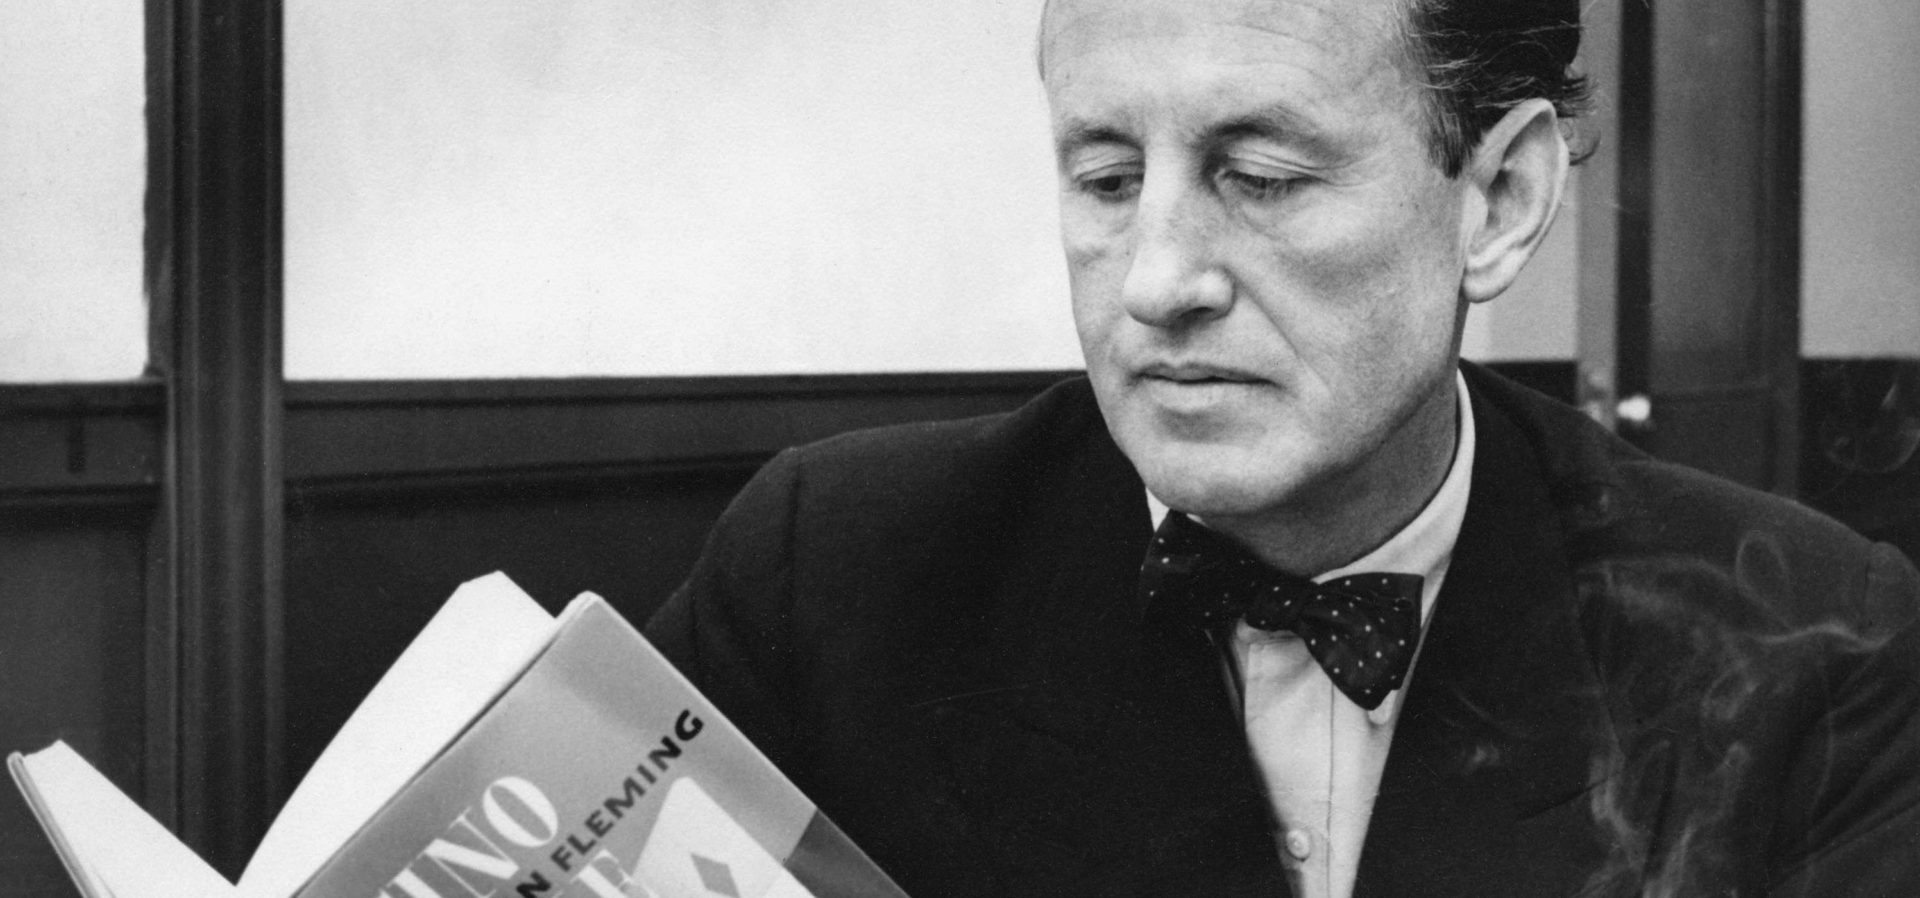 Ian Fleming reading a copy of Casino Royale